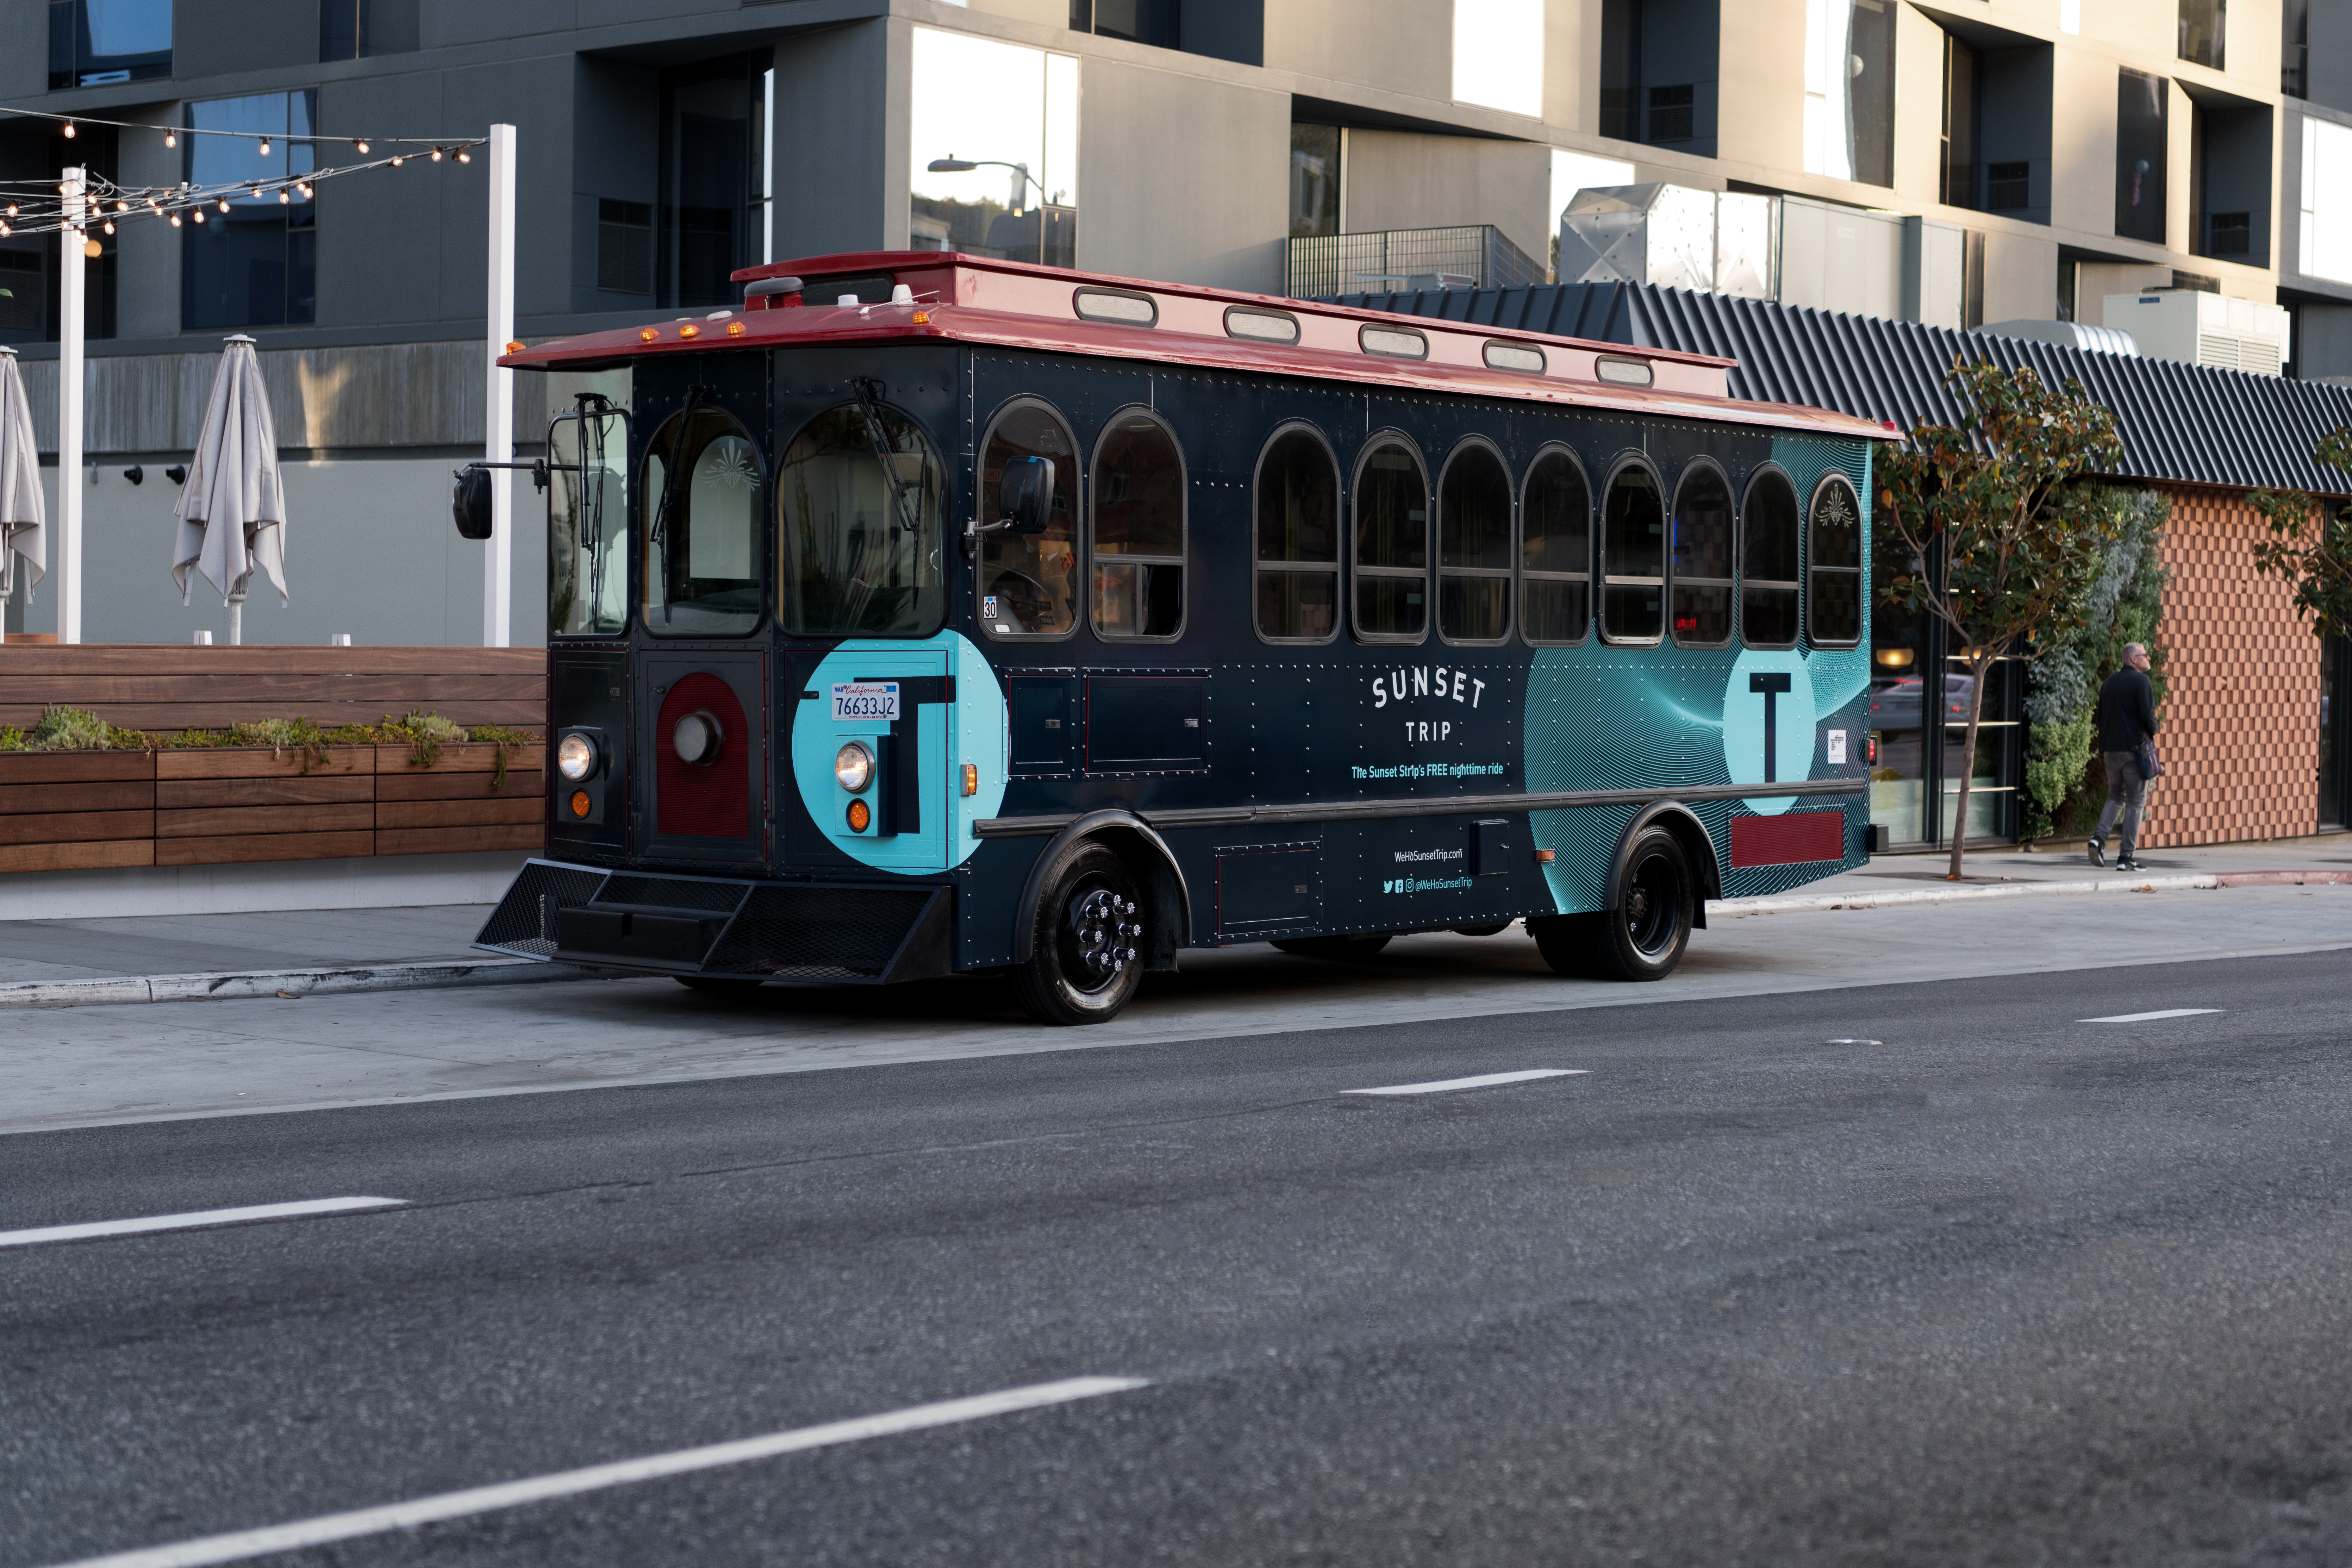 The Sunset Trip trolley